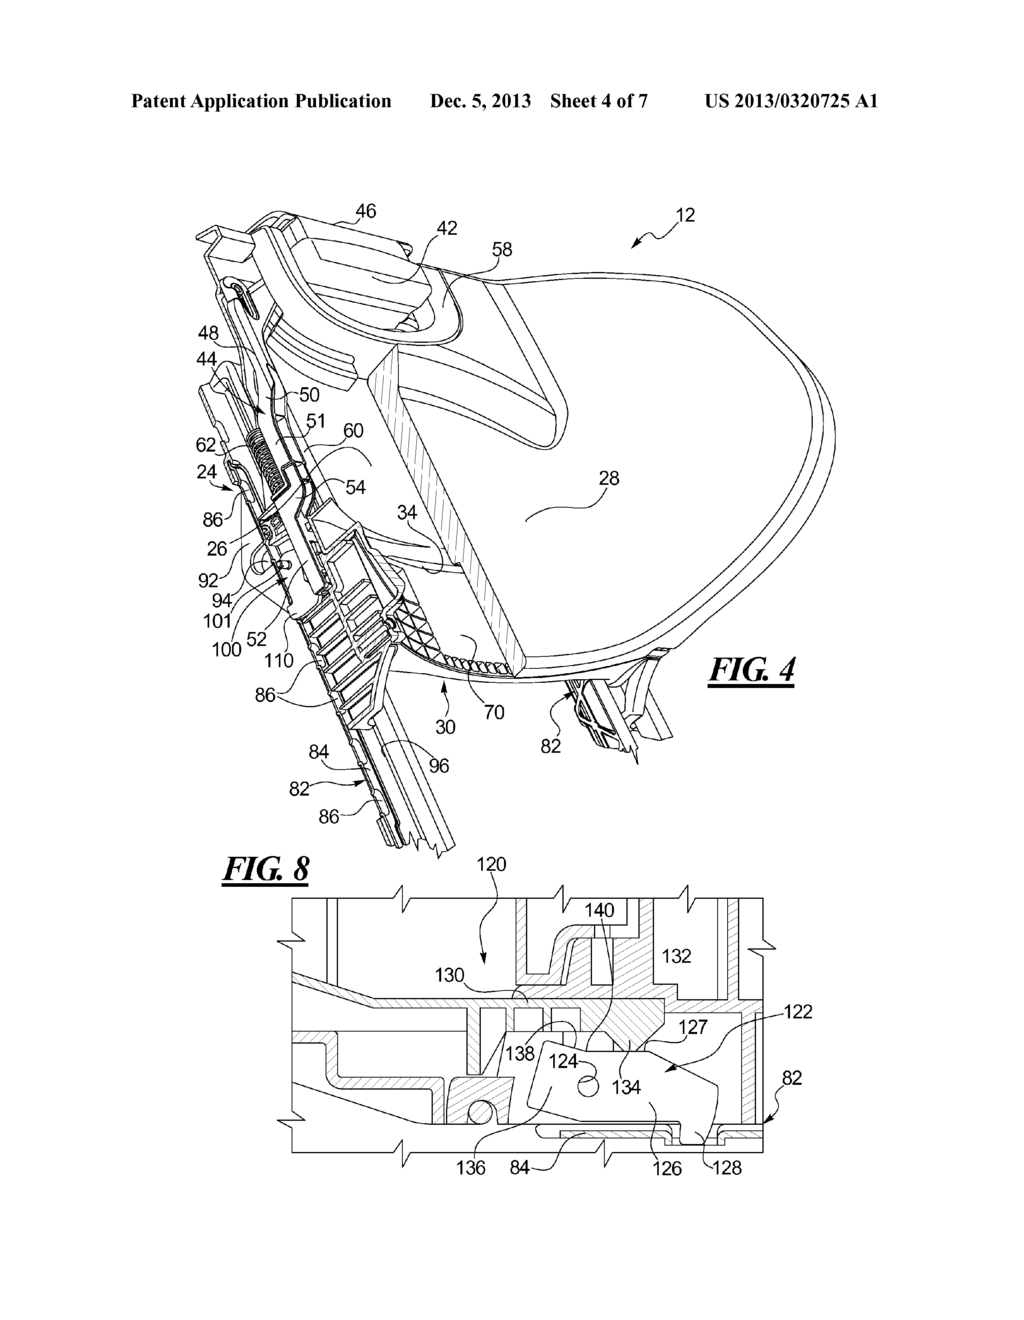 Heated Seat Wiring Diagram 2009 Chevy Traverse. Seat. Auto